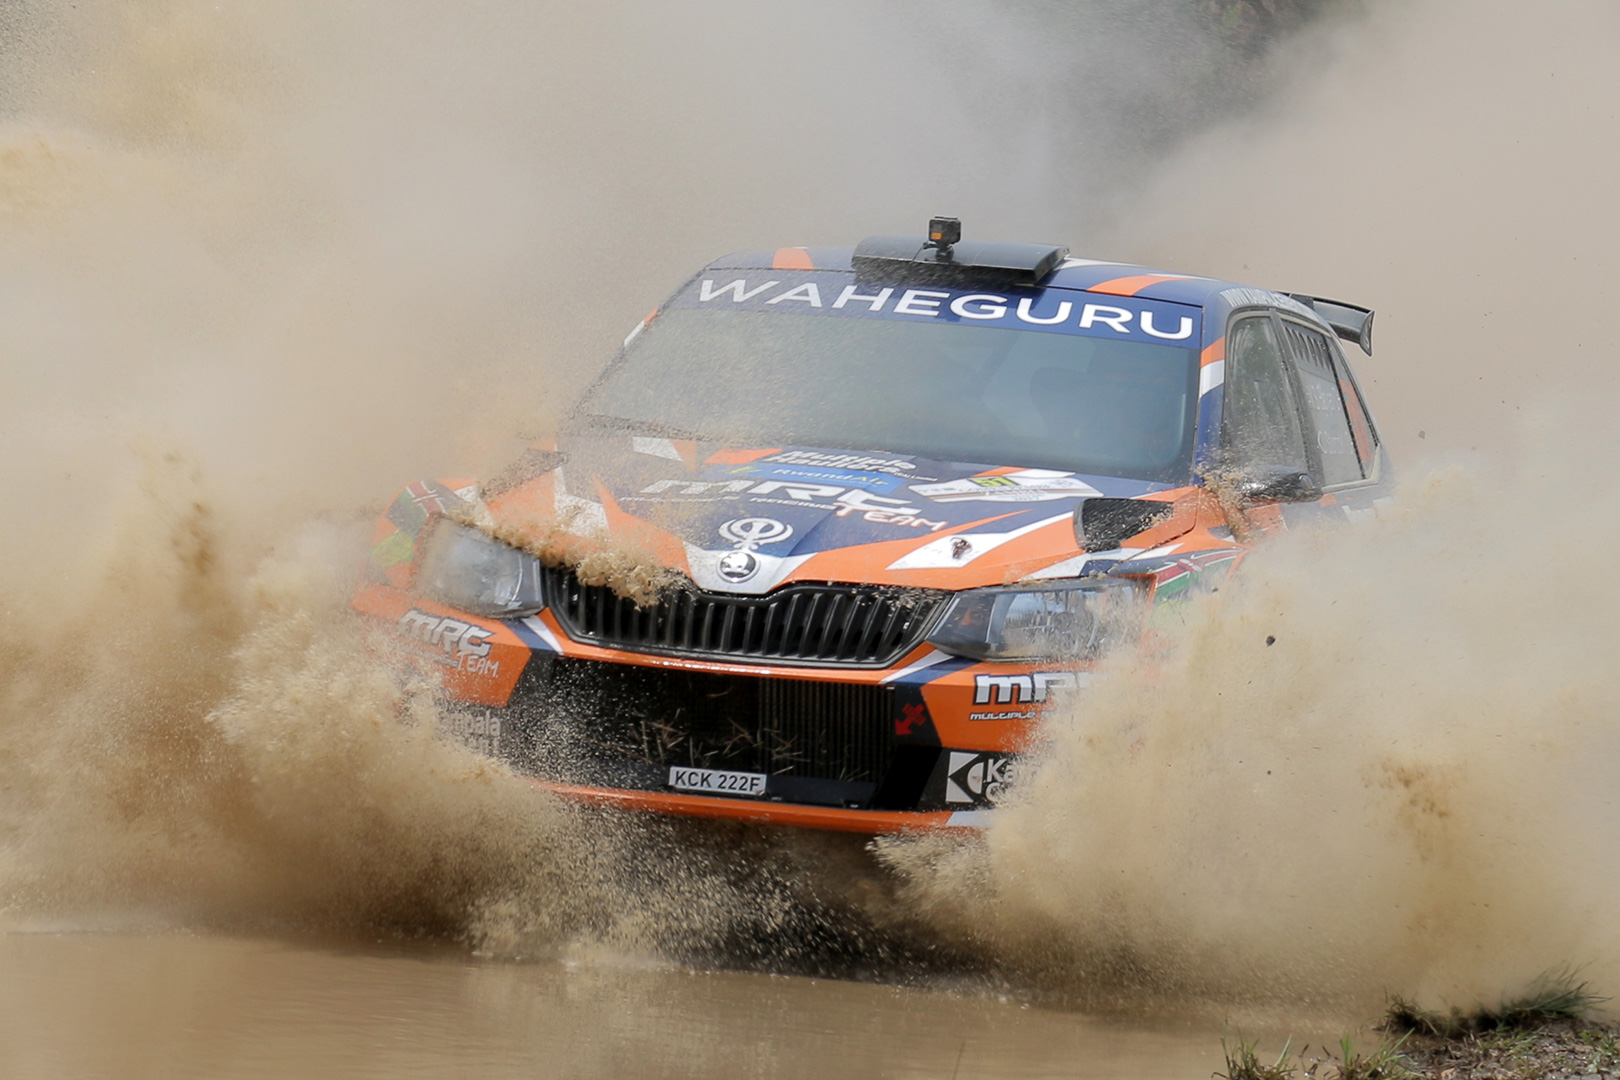 Manvir Baryan breaks new ground with back-to-back African Championship wins in a FABIA R5